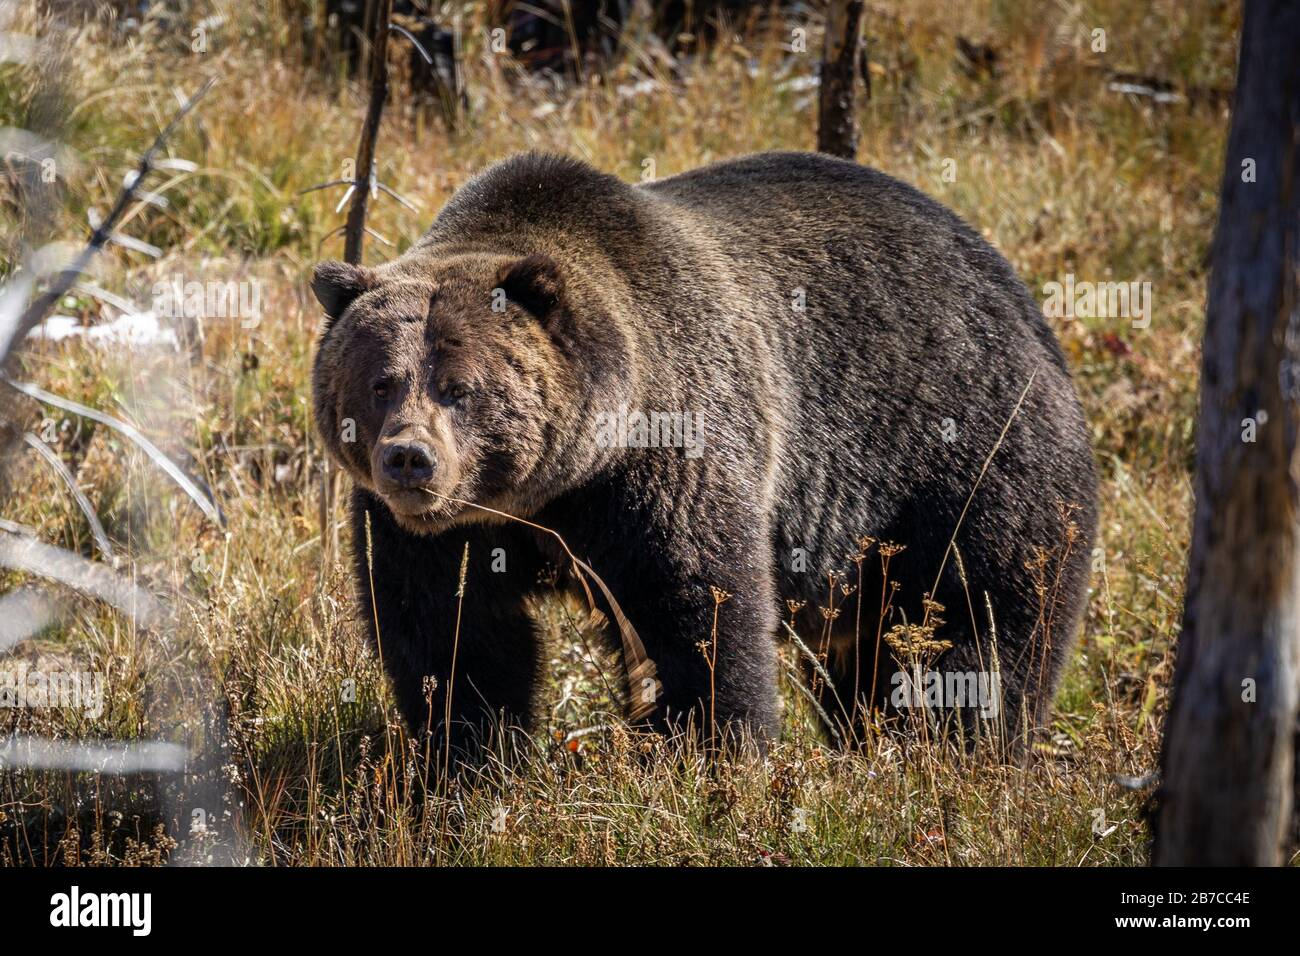 Full body portrait of grizzly bear standing and finding some food on floor, field covered by brown grass during autumn in Yellowstone National Park, W Stock Photo